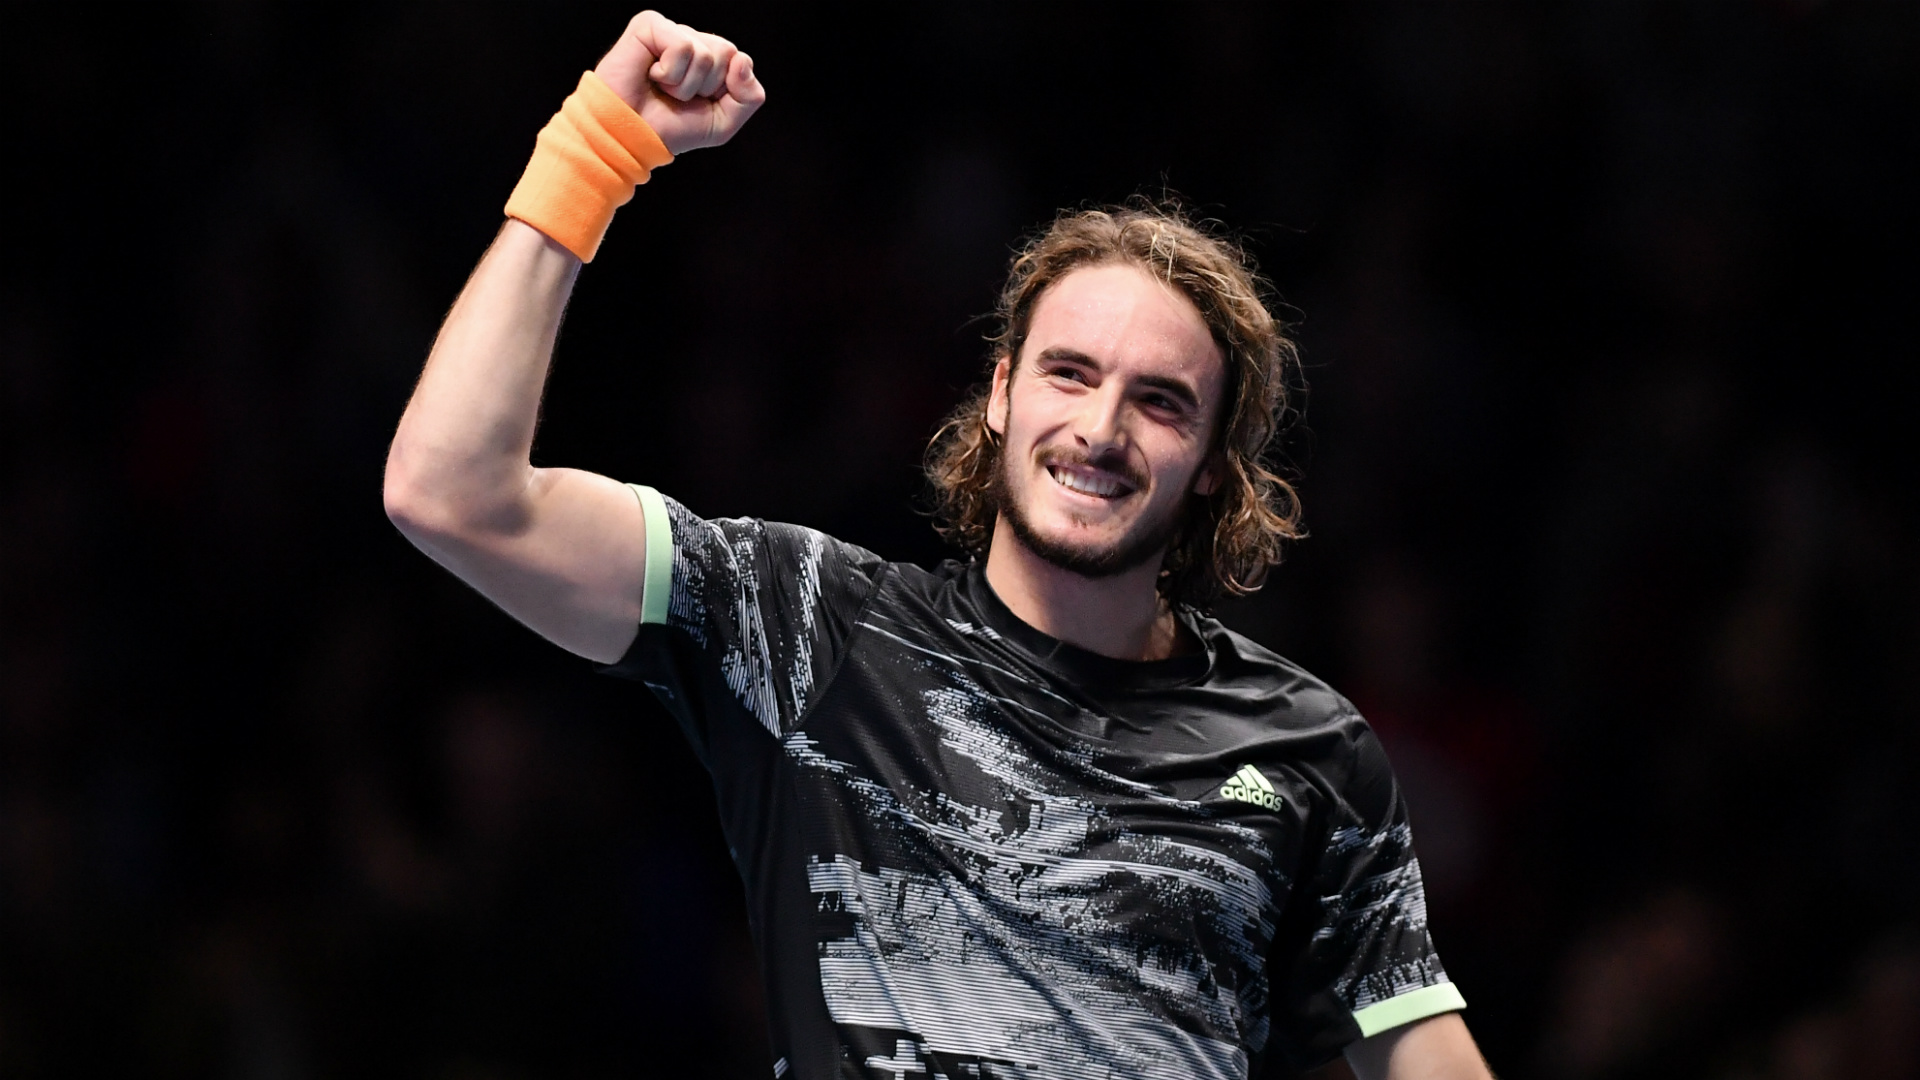 Tsitsipas 'living the dream' after beating Federer at ATP Finals